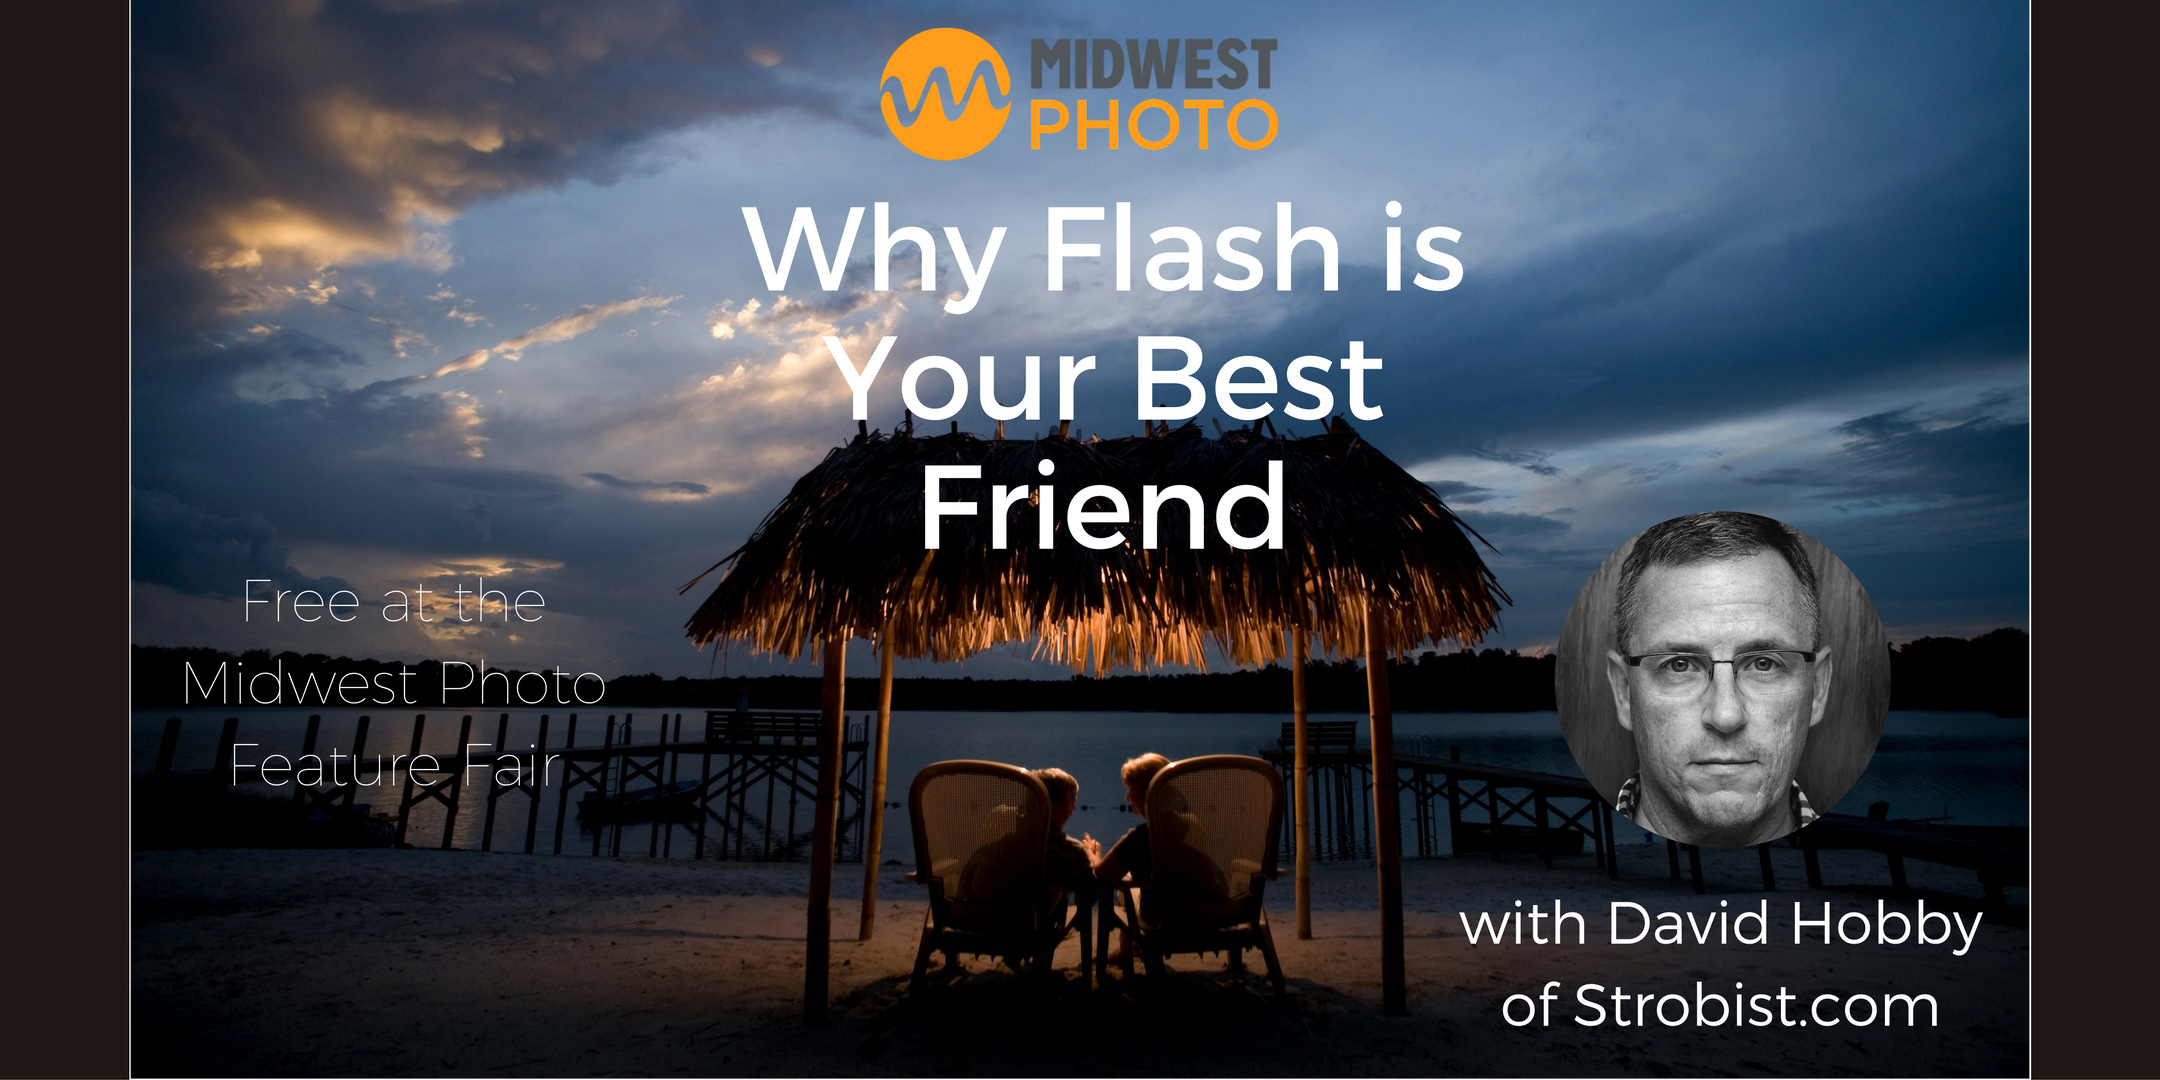 Why Flash is your BEST Friend with David Hobby